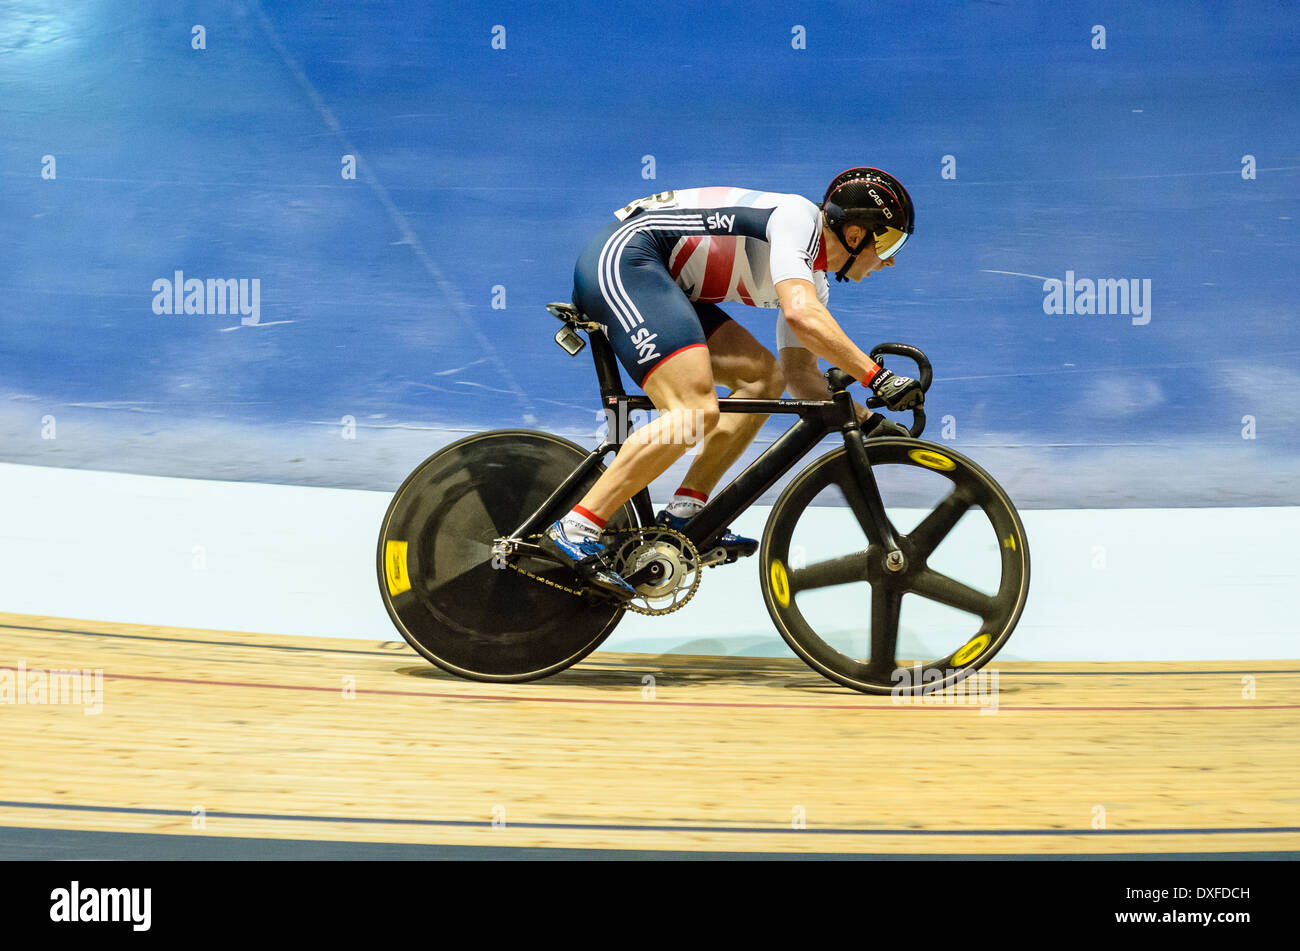 Olympische Championr Jason Kenny racing Revolution Serie trifft im Manchester Velodrome oder National Cycling Centre Stockbild